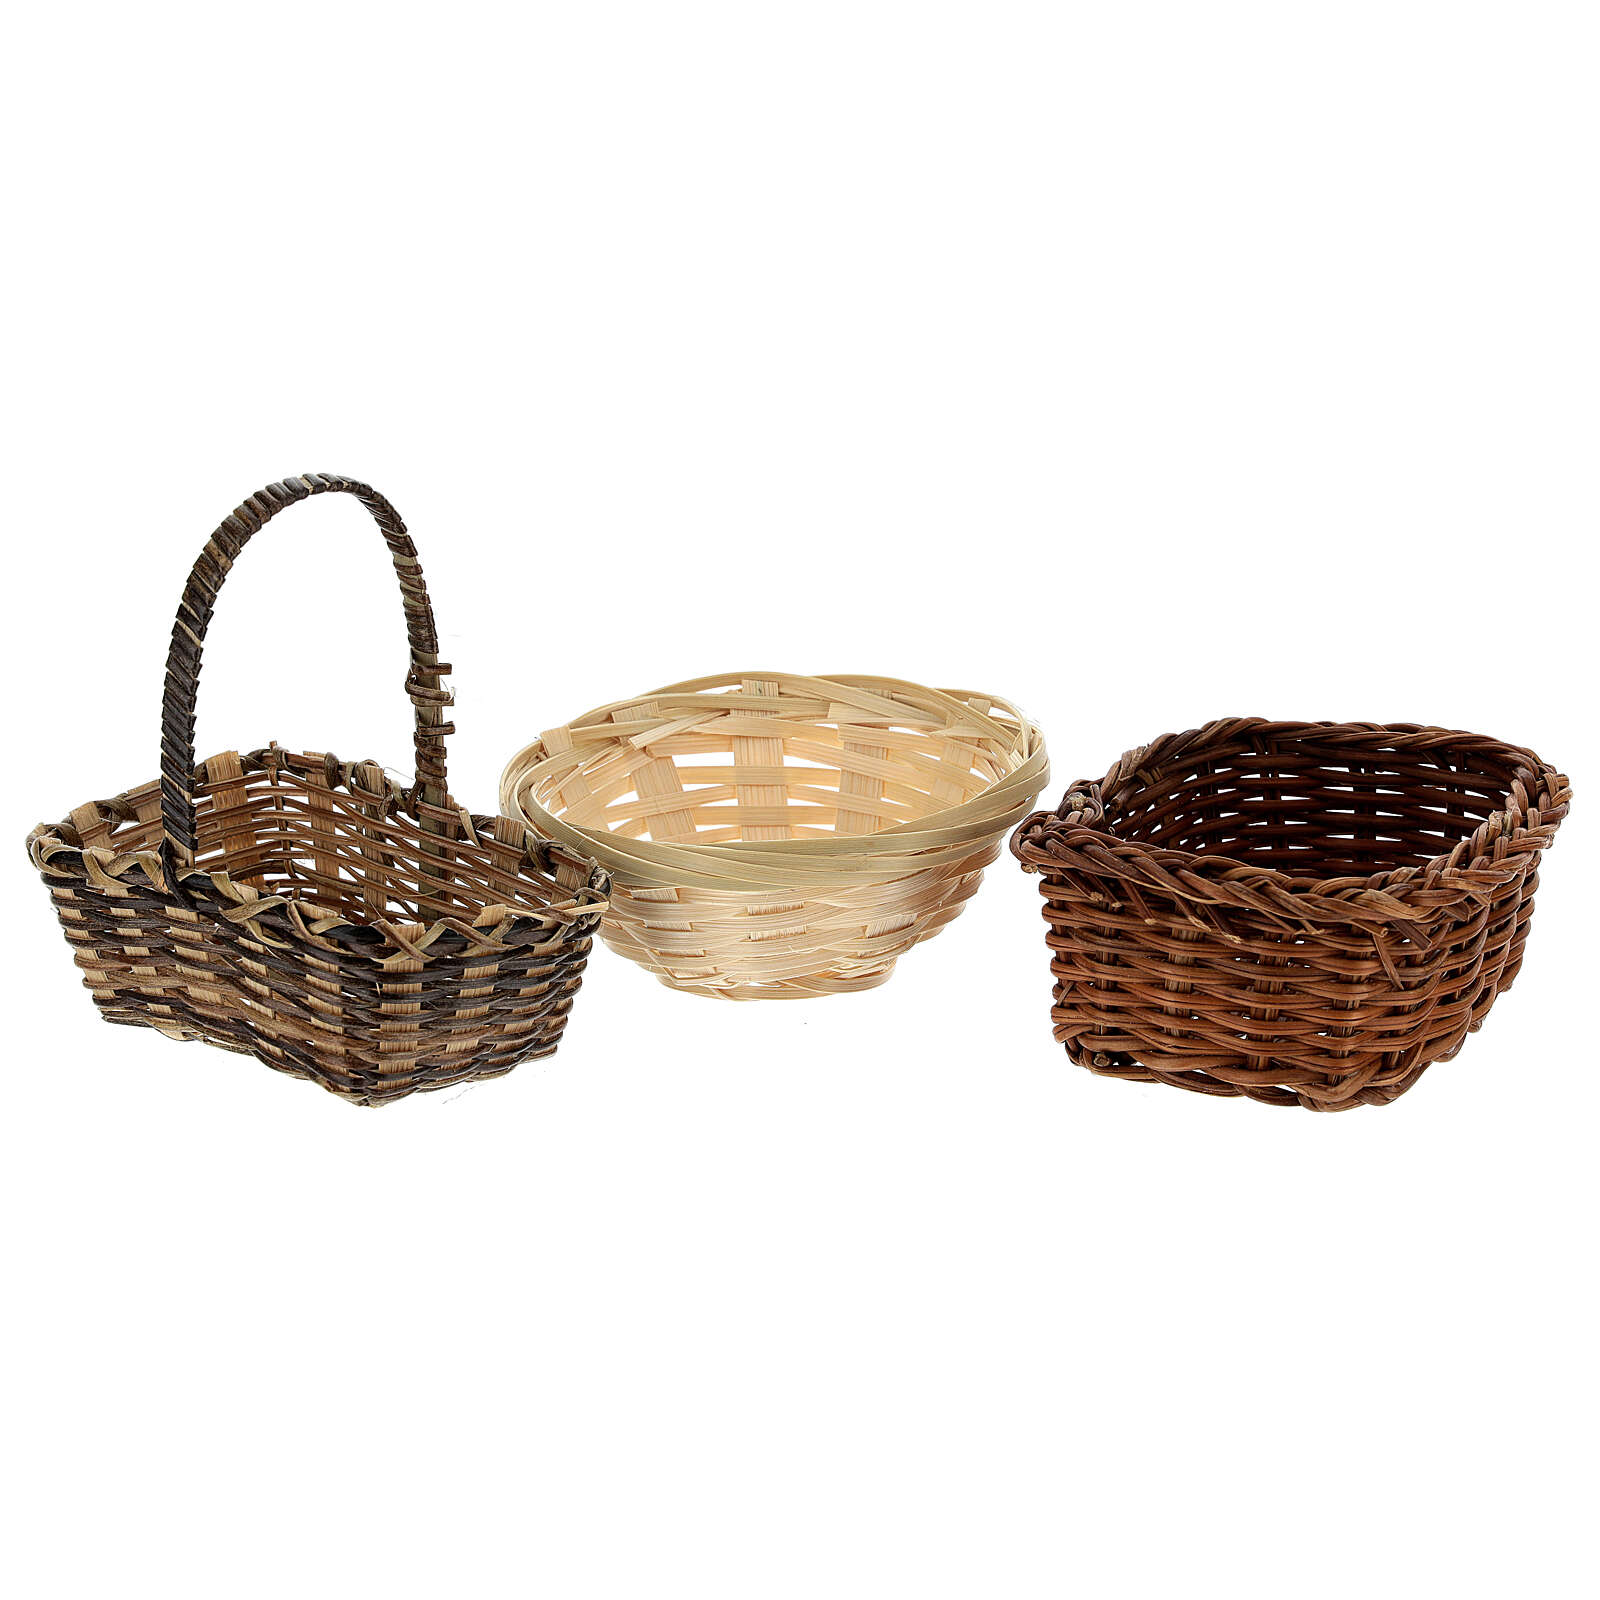 Wicker baskets 10 pieces different shapes and sizes for Nativity Scene with 20-30-40 cm figurines 4